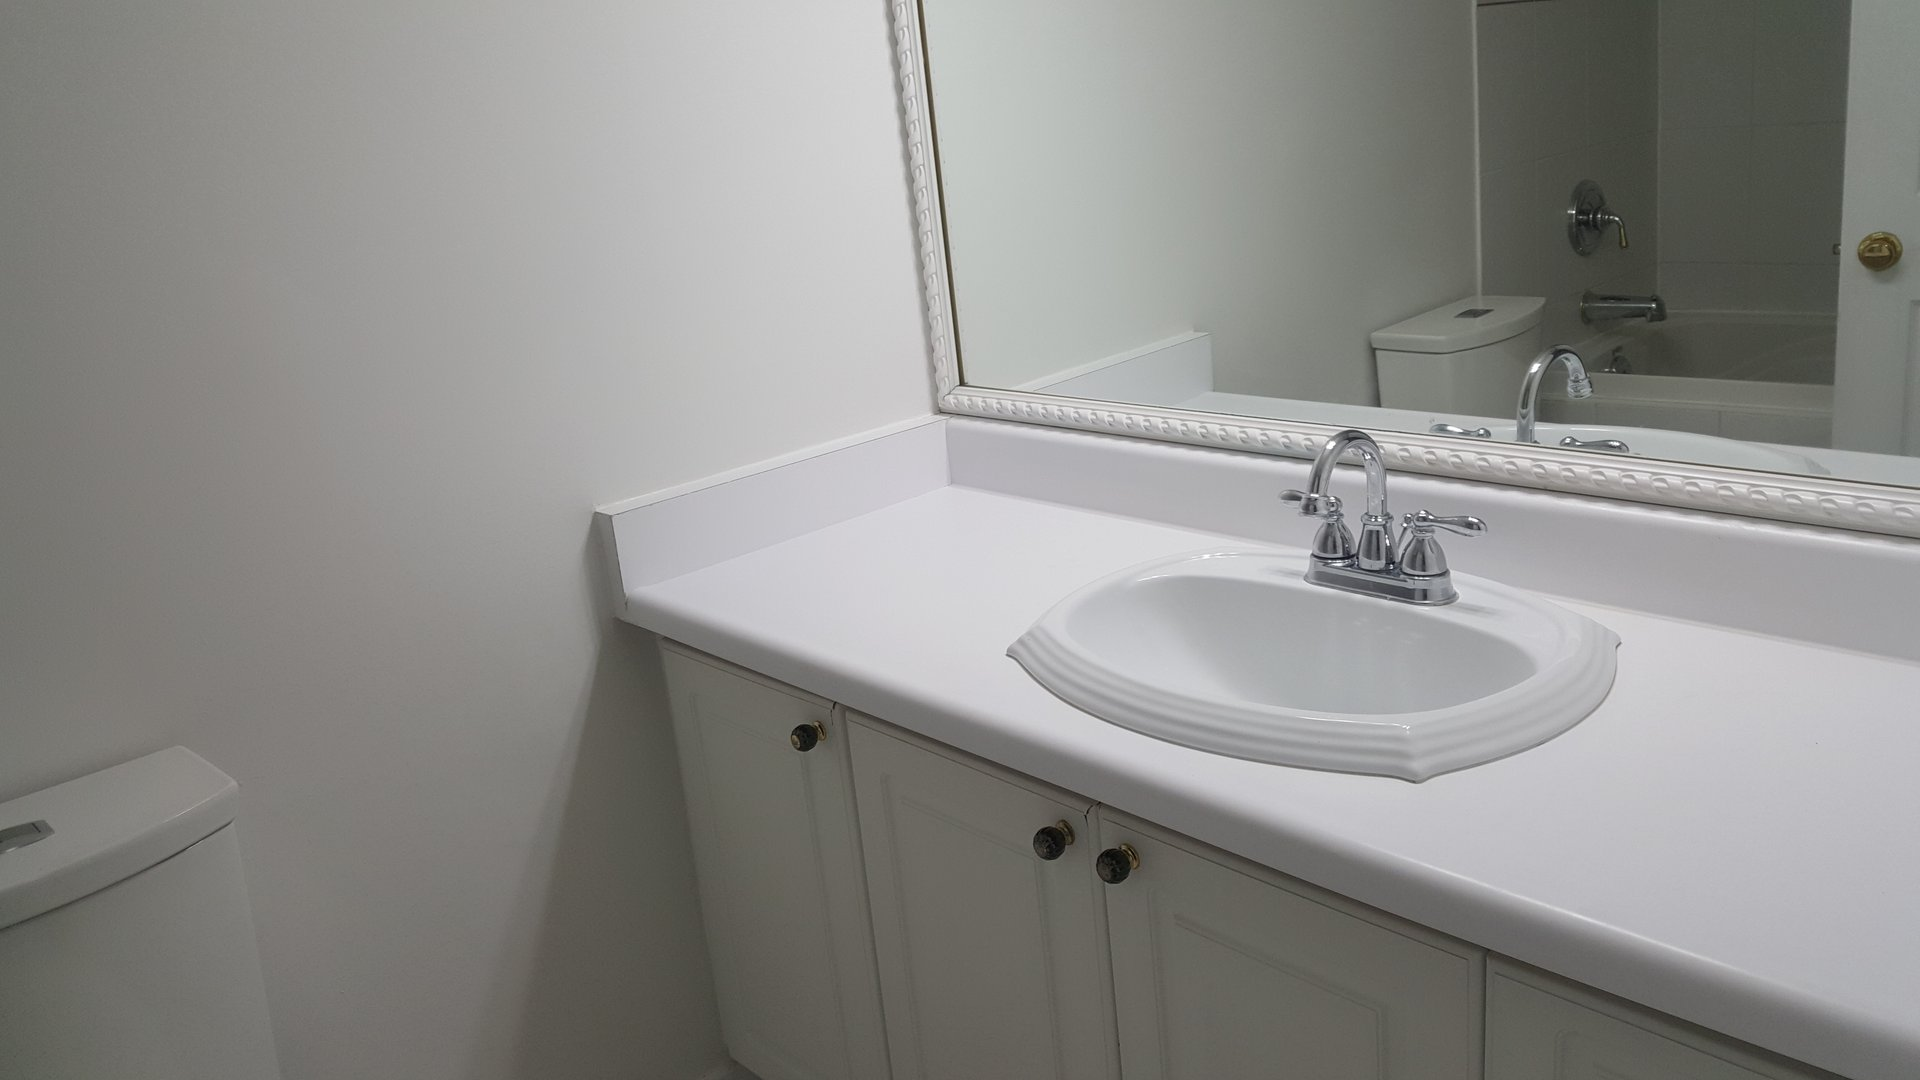 Condo for rent at 236 Albion Road, Etobicoke, ON. This is the bathroom.